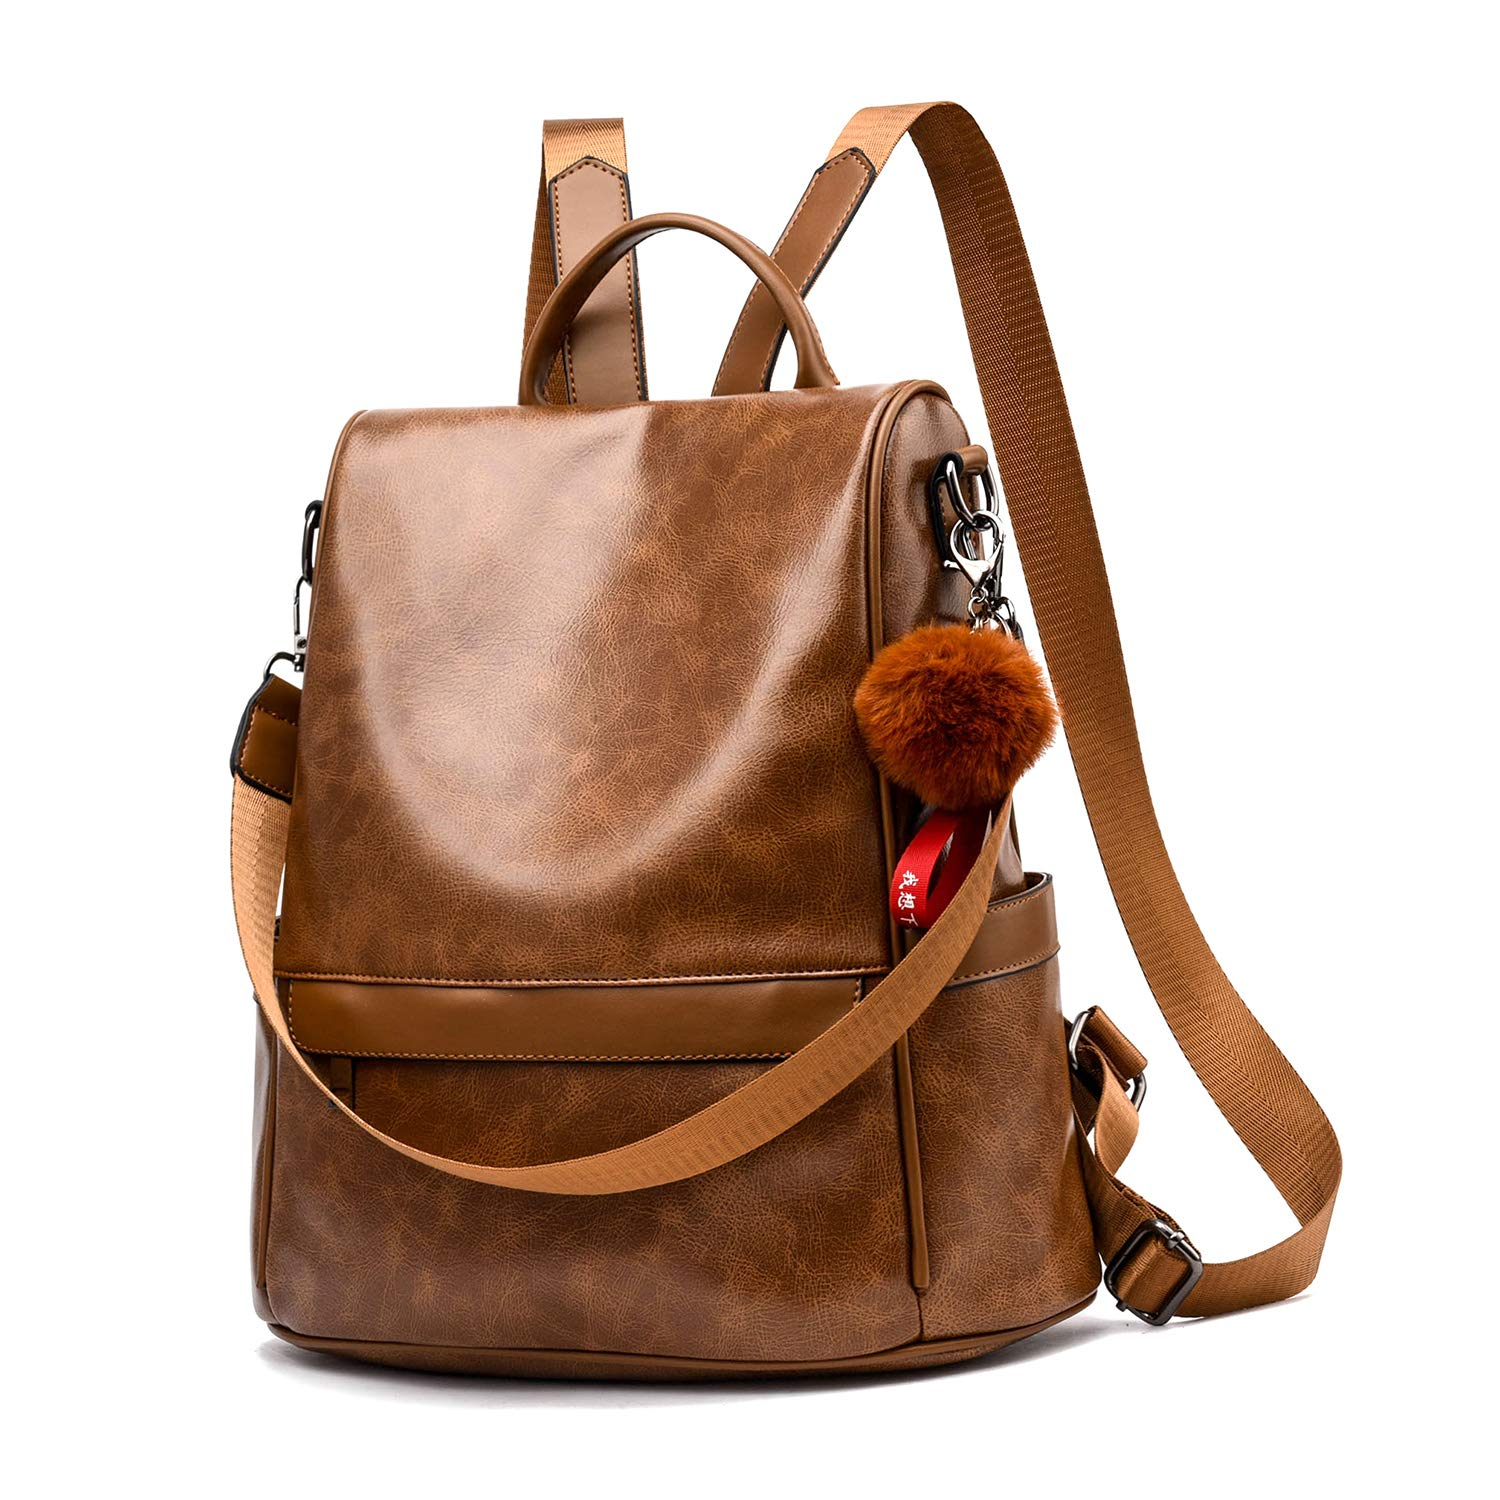 Women Backpack Purse PU Leather Anti-theft Casual Shoulder Bag Fashion Ladies Satchel Bags(Tan) by Cheruty